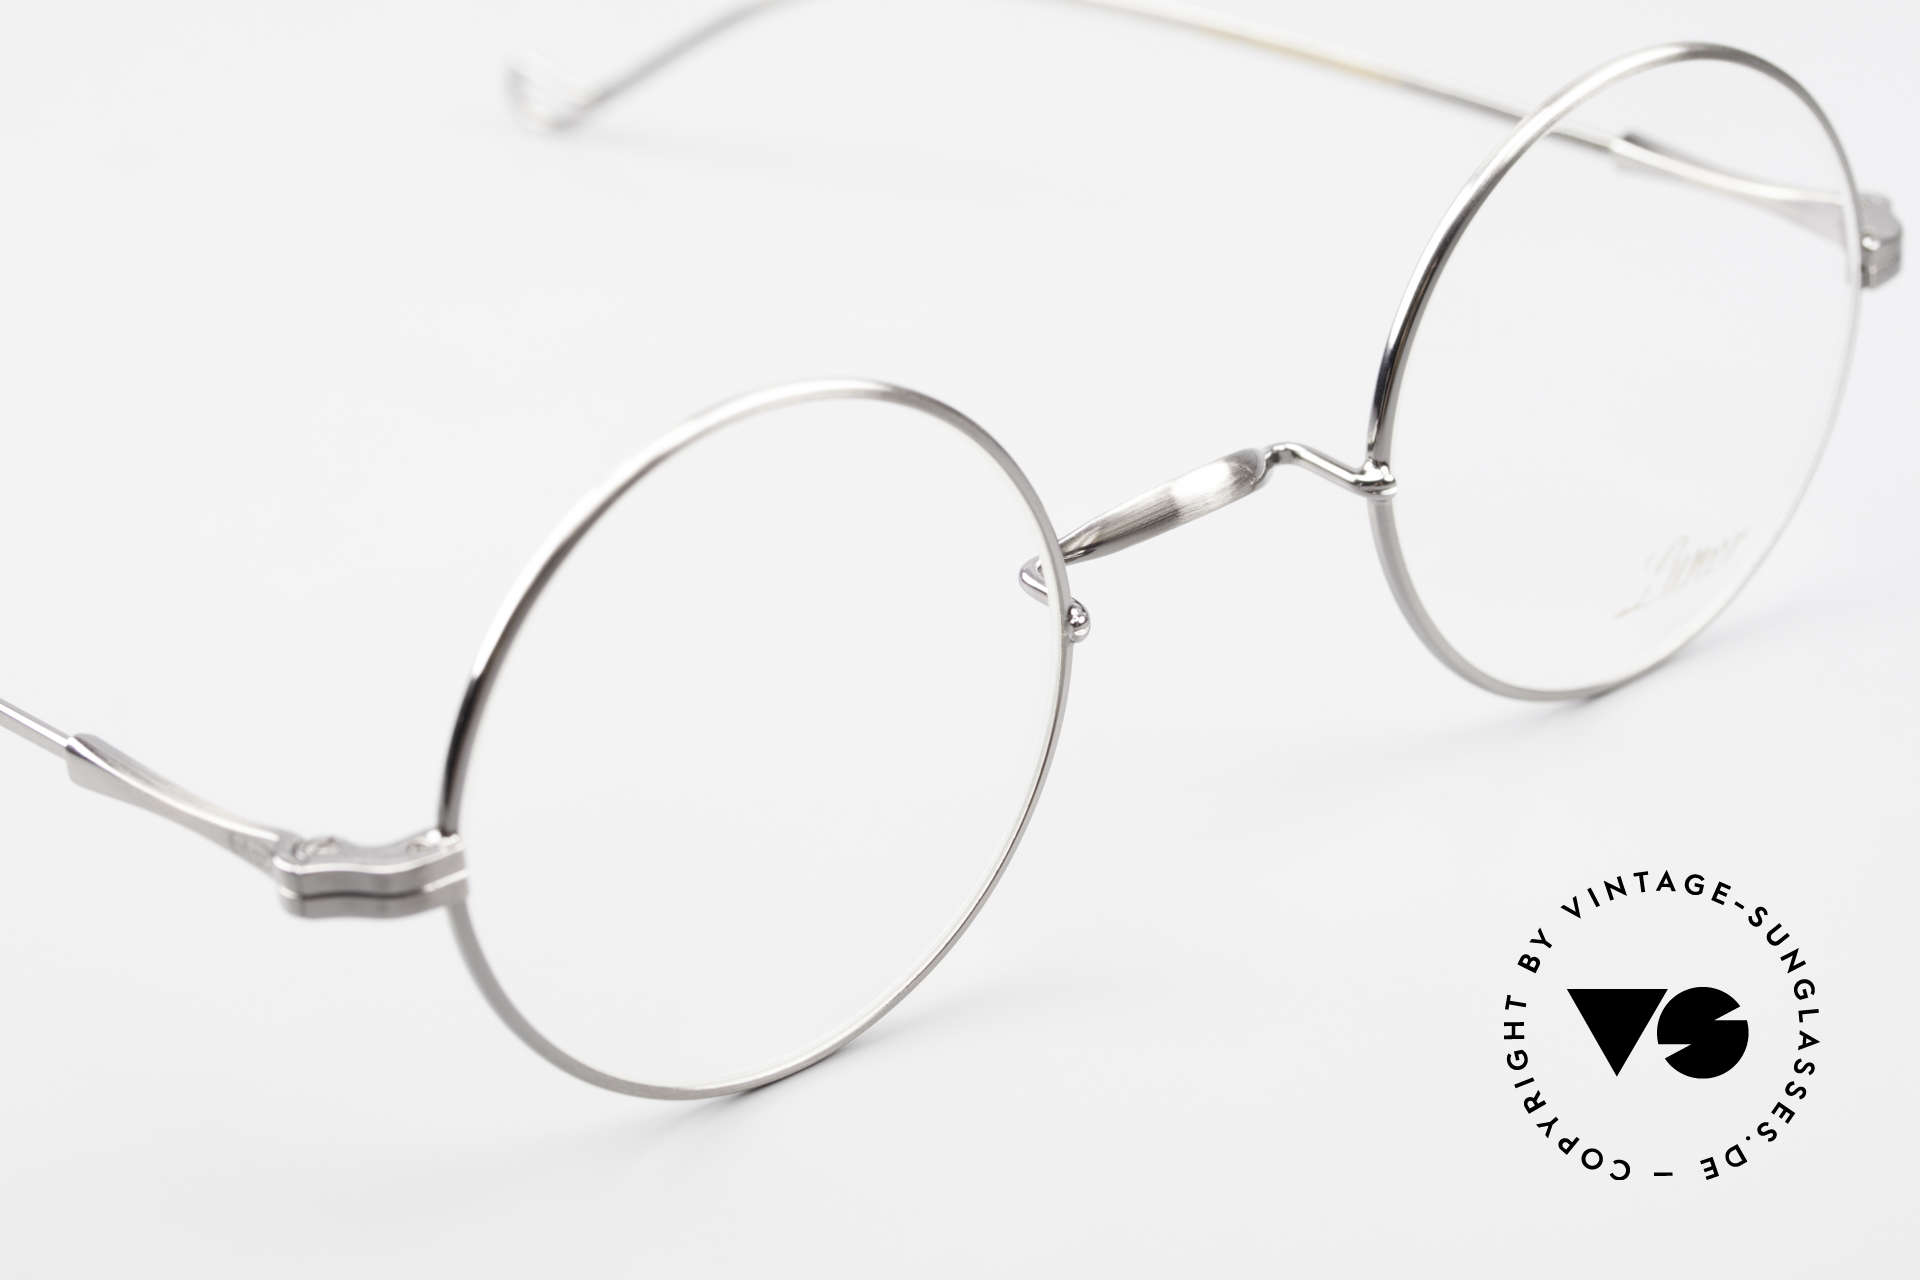 Lunor II 23 Round Frame Antique Silver, a timeless, unworn RARITY for all lovers of quality, Made for Men and Women